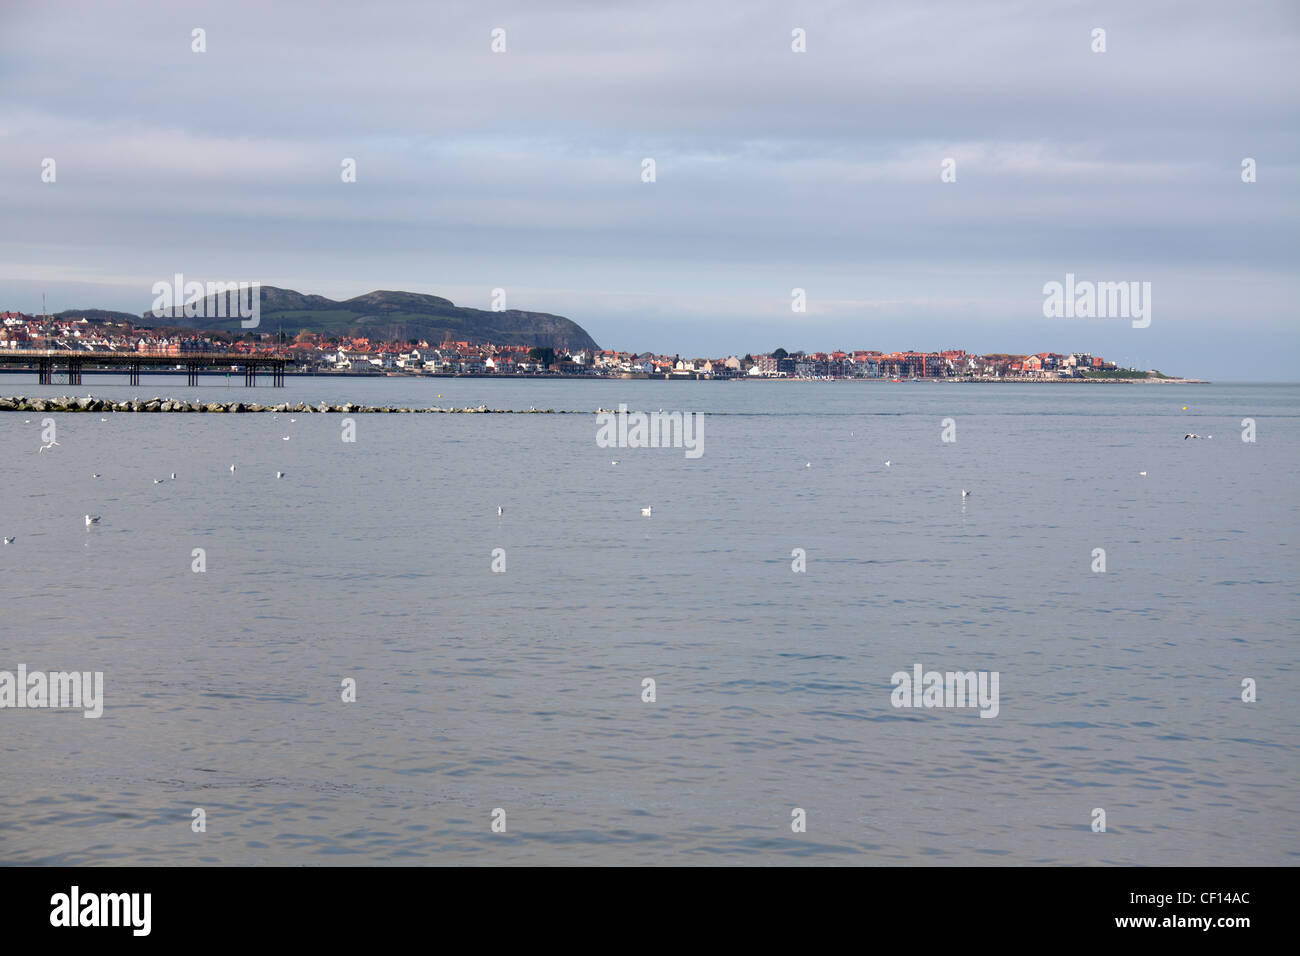 The north wales seaside resort of Colwyn Bay and Rhos on Sea with the Great Orme at Llandudno in the background. - Stock Image